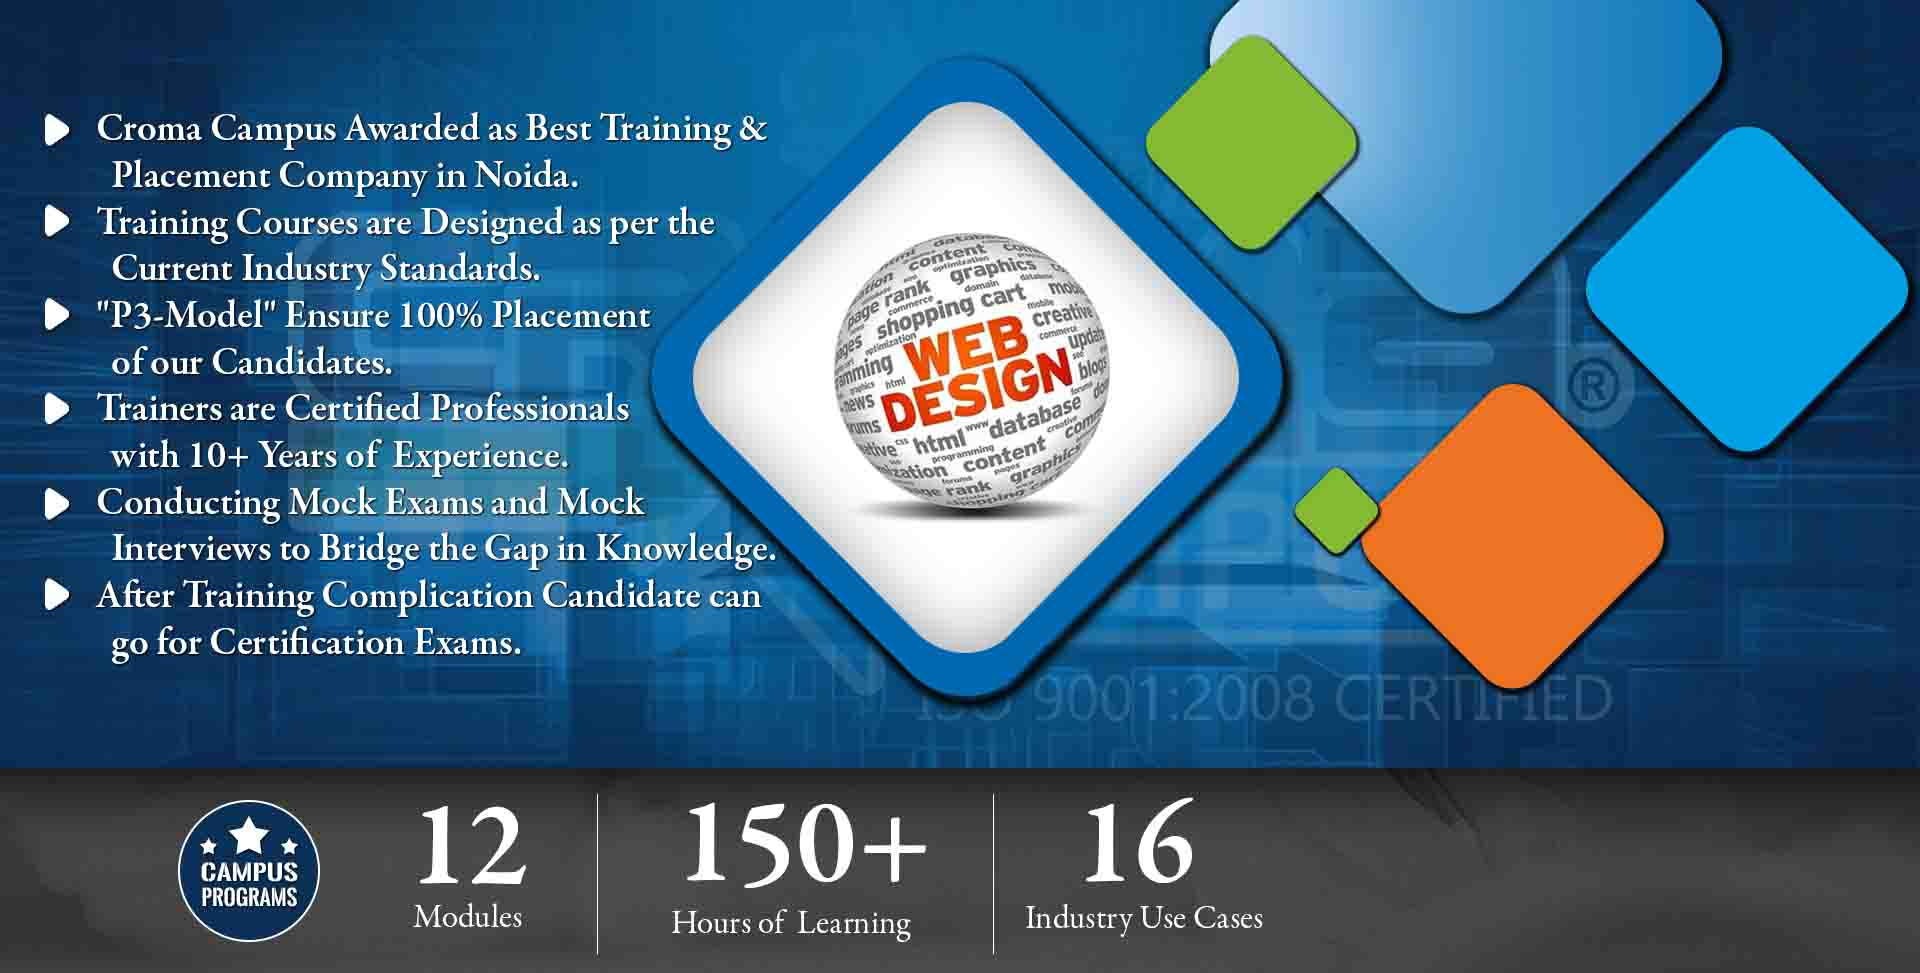 Web Designing Training in Noida- Croma Campus